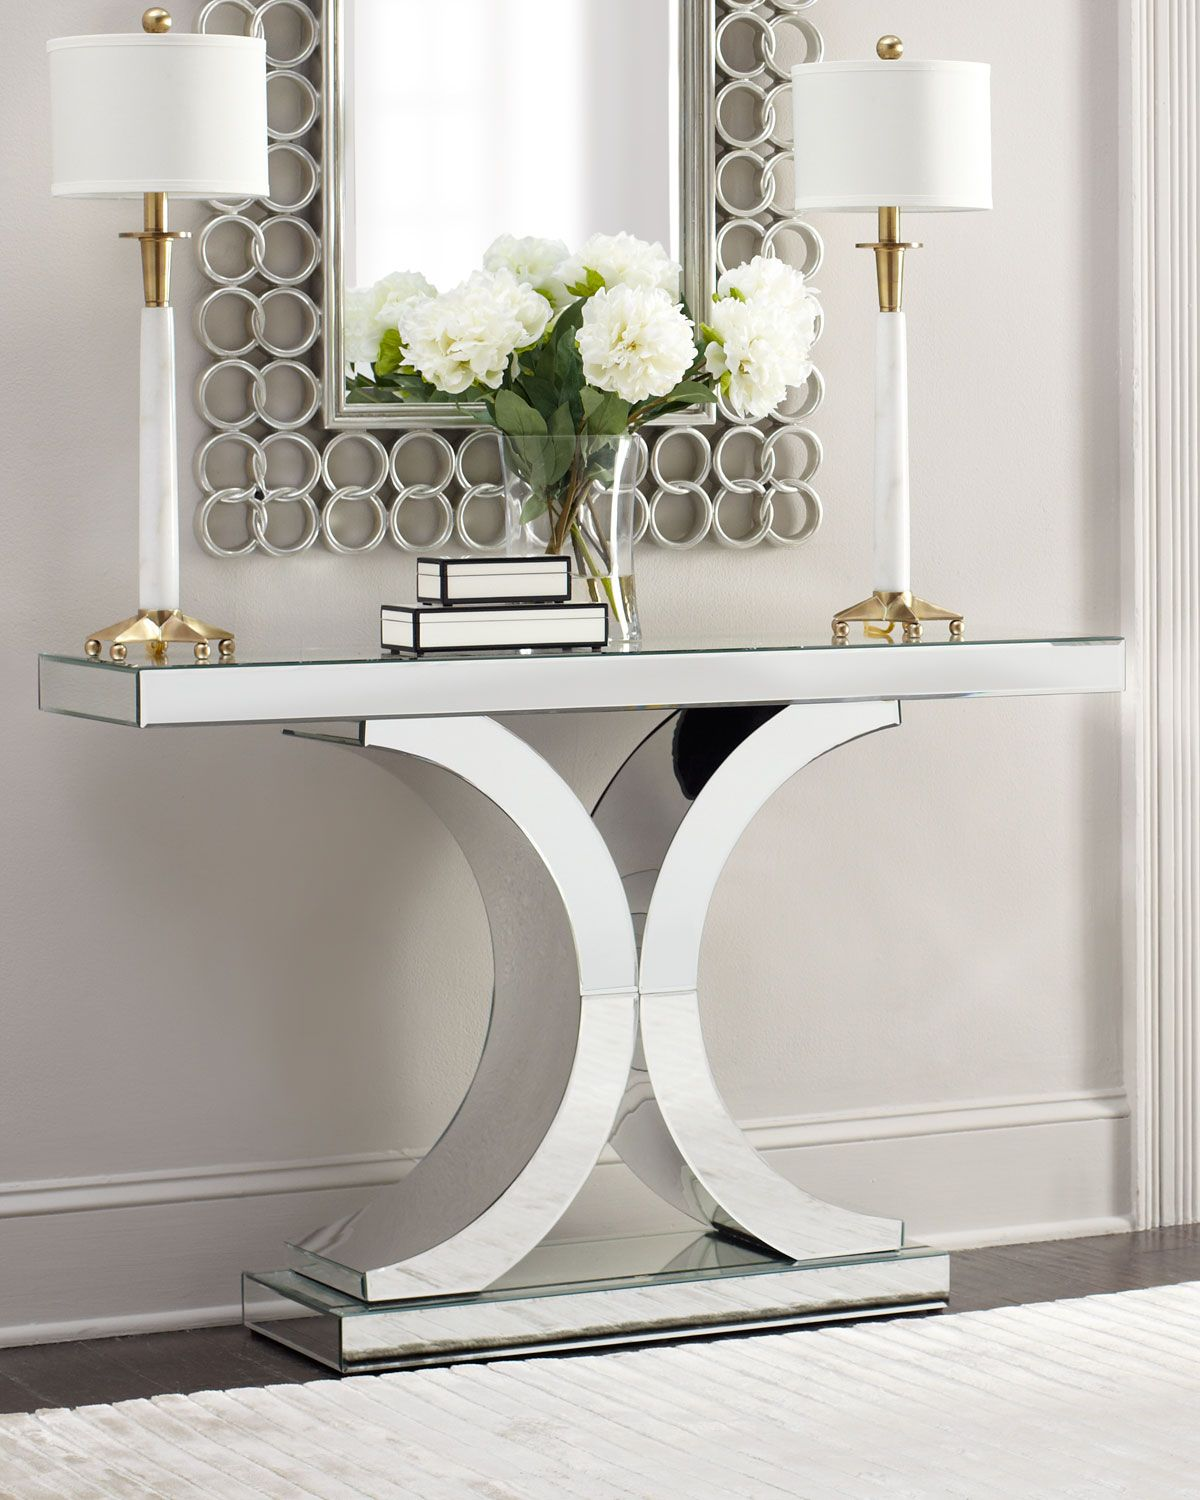 Splendora Mirrored Console Interiors Entryway Decor Home